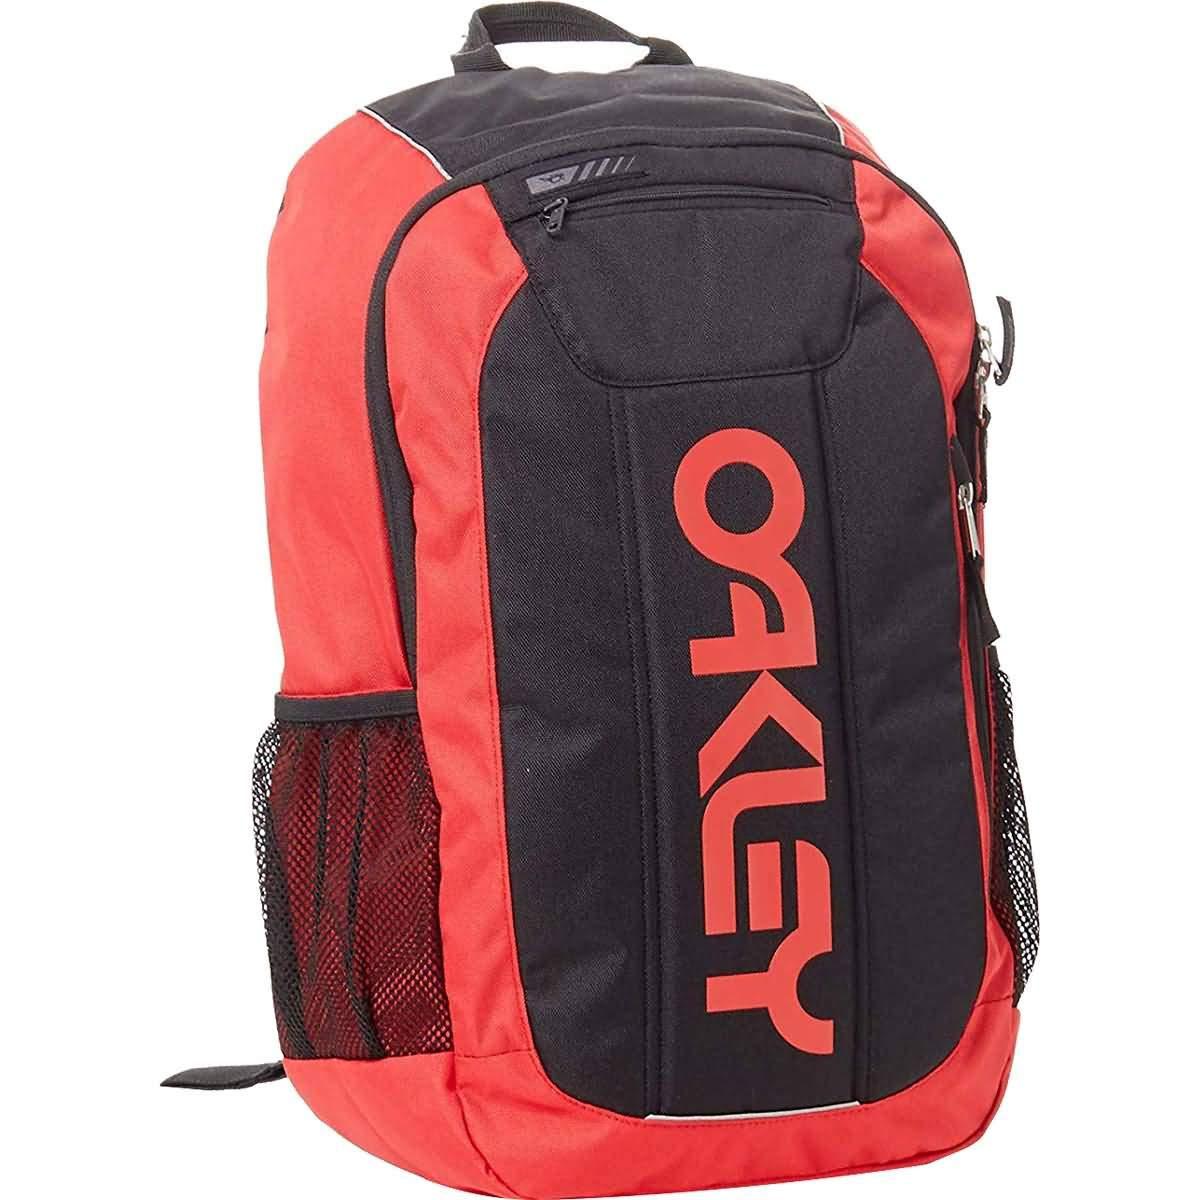 d9fdd88a5 Amazon.com: Oakley Mens Men's Enduro 20L 3.0, BLACKOUT, NOne SizeIZE:  Clothing